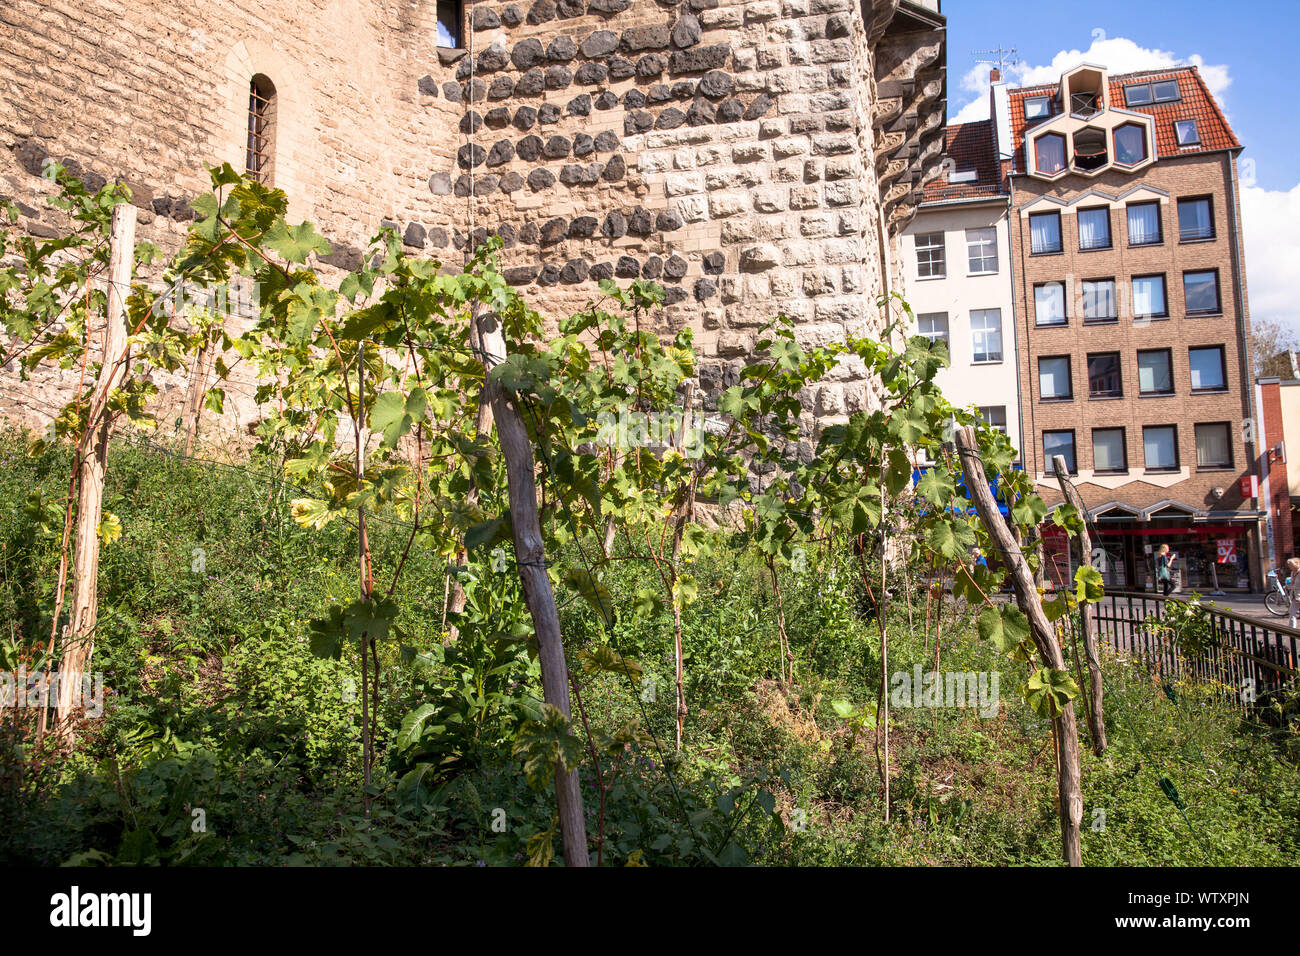 grapevine at the historic town gate Severinstorburg at the Chlodwig square in the south part of the town, Cologne, Germany.  Weinreben an der Severins Stock Photo